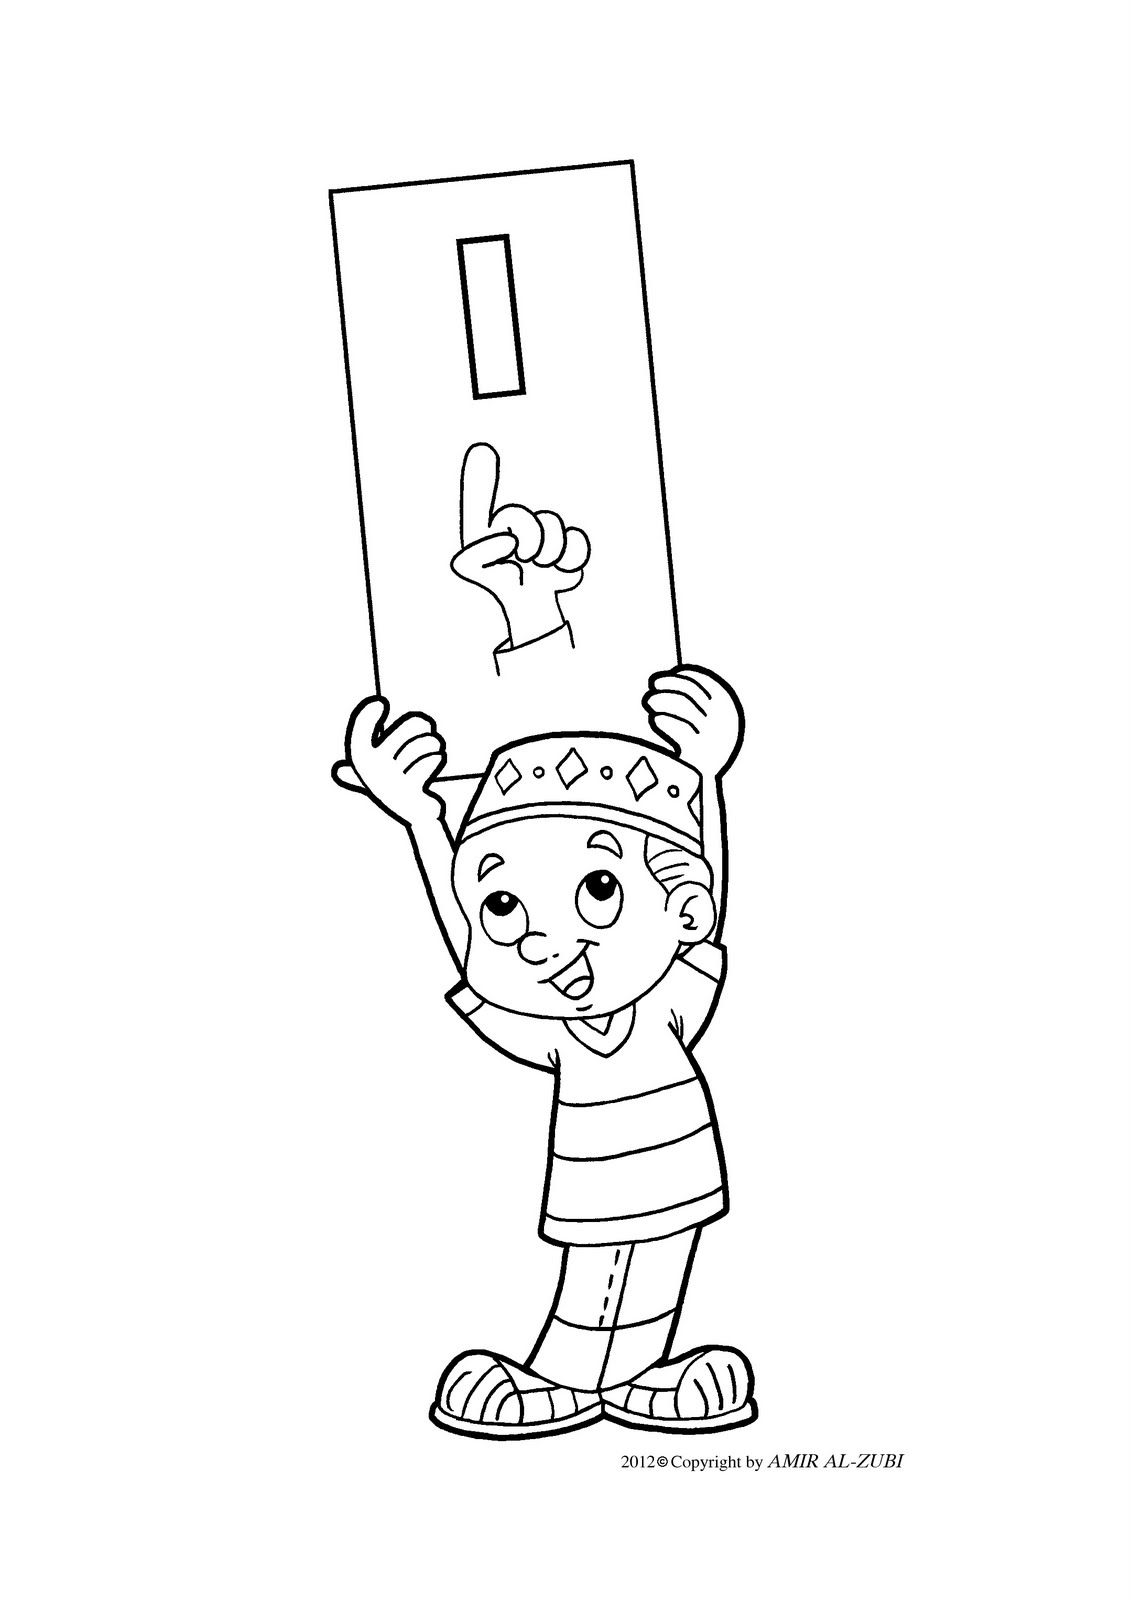 coloring page boy coloring pages pinterest boys